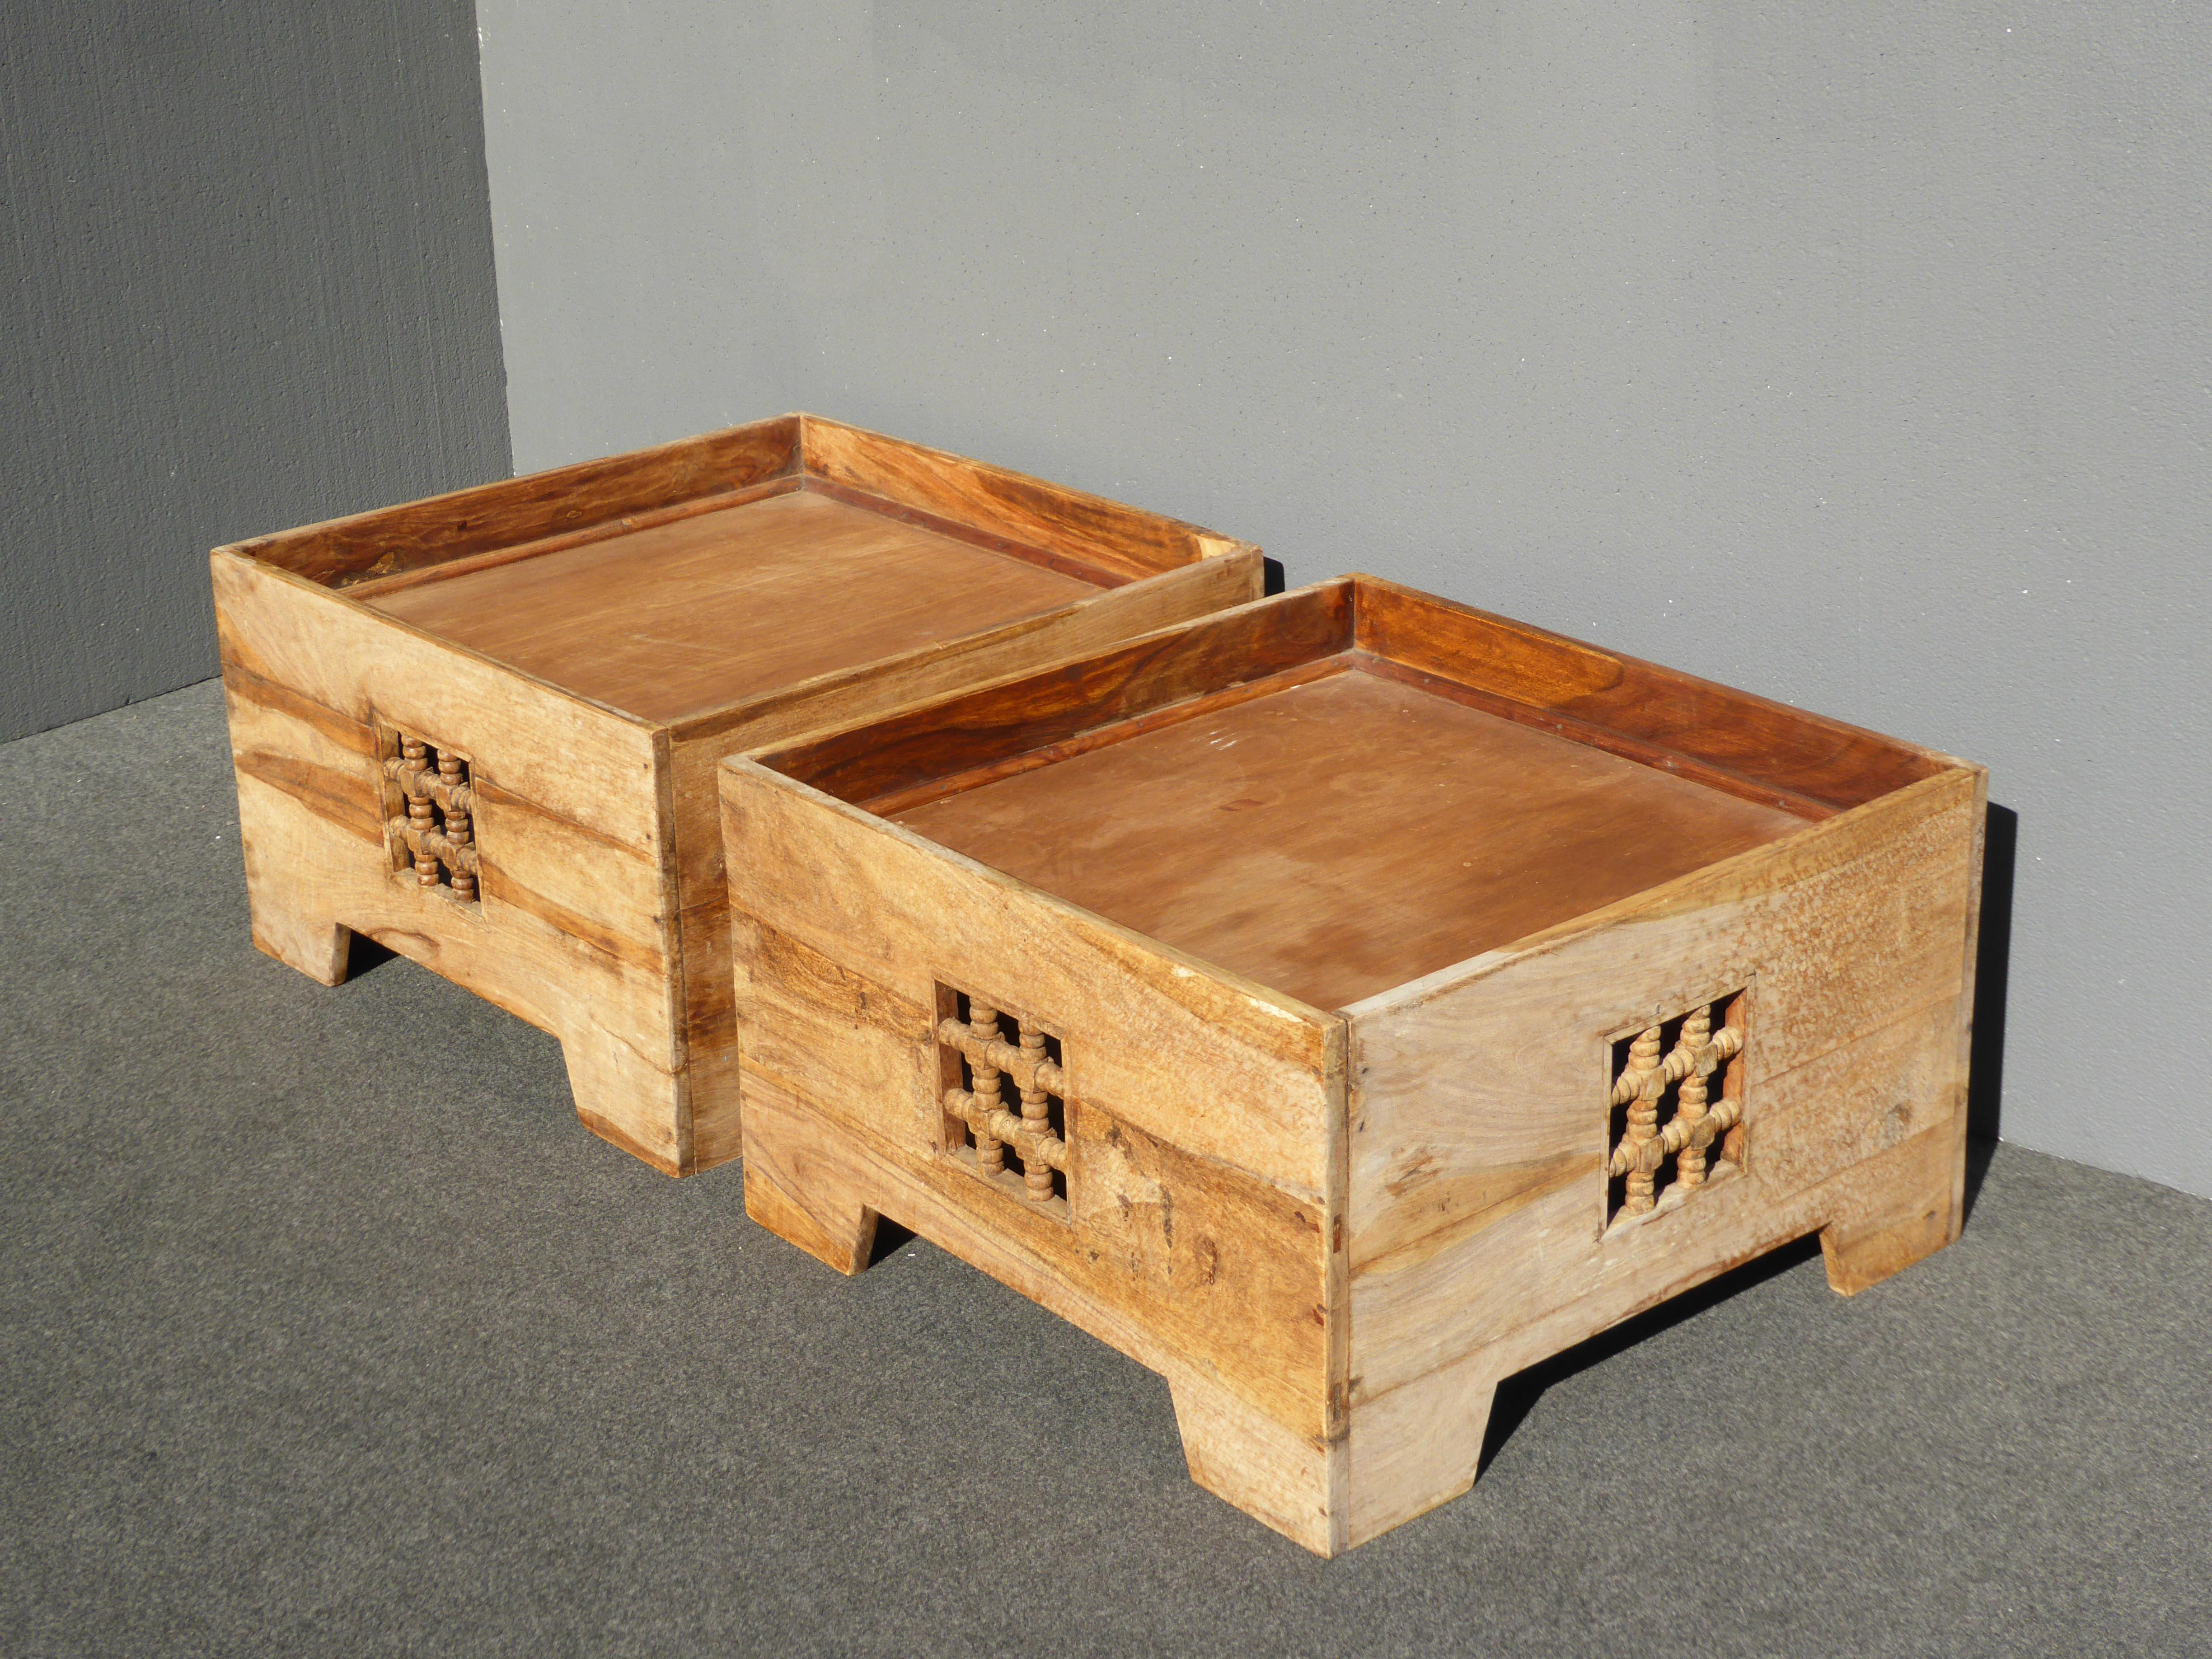 Teak Asian Style Boxes Coffee Table End Tables   A Pair   Image 2 Of 11